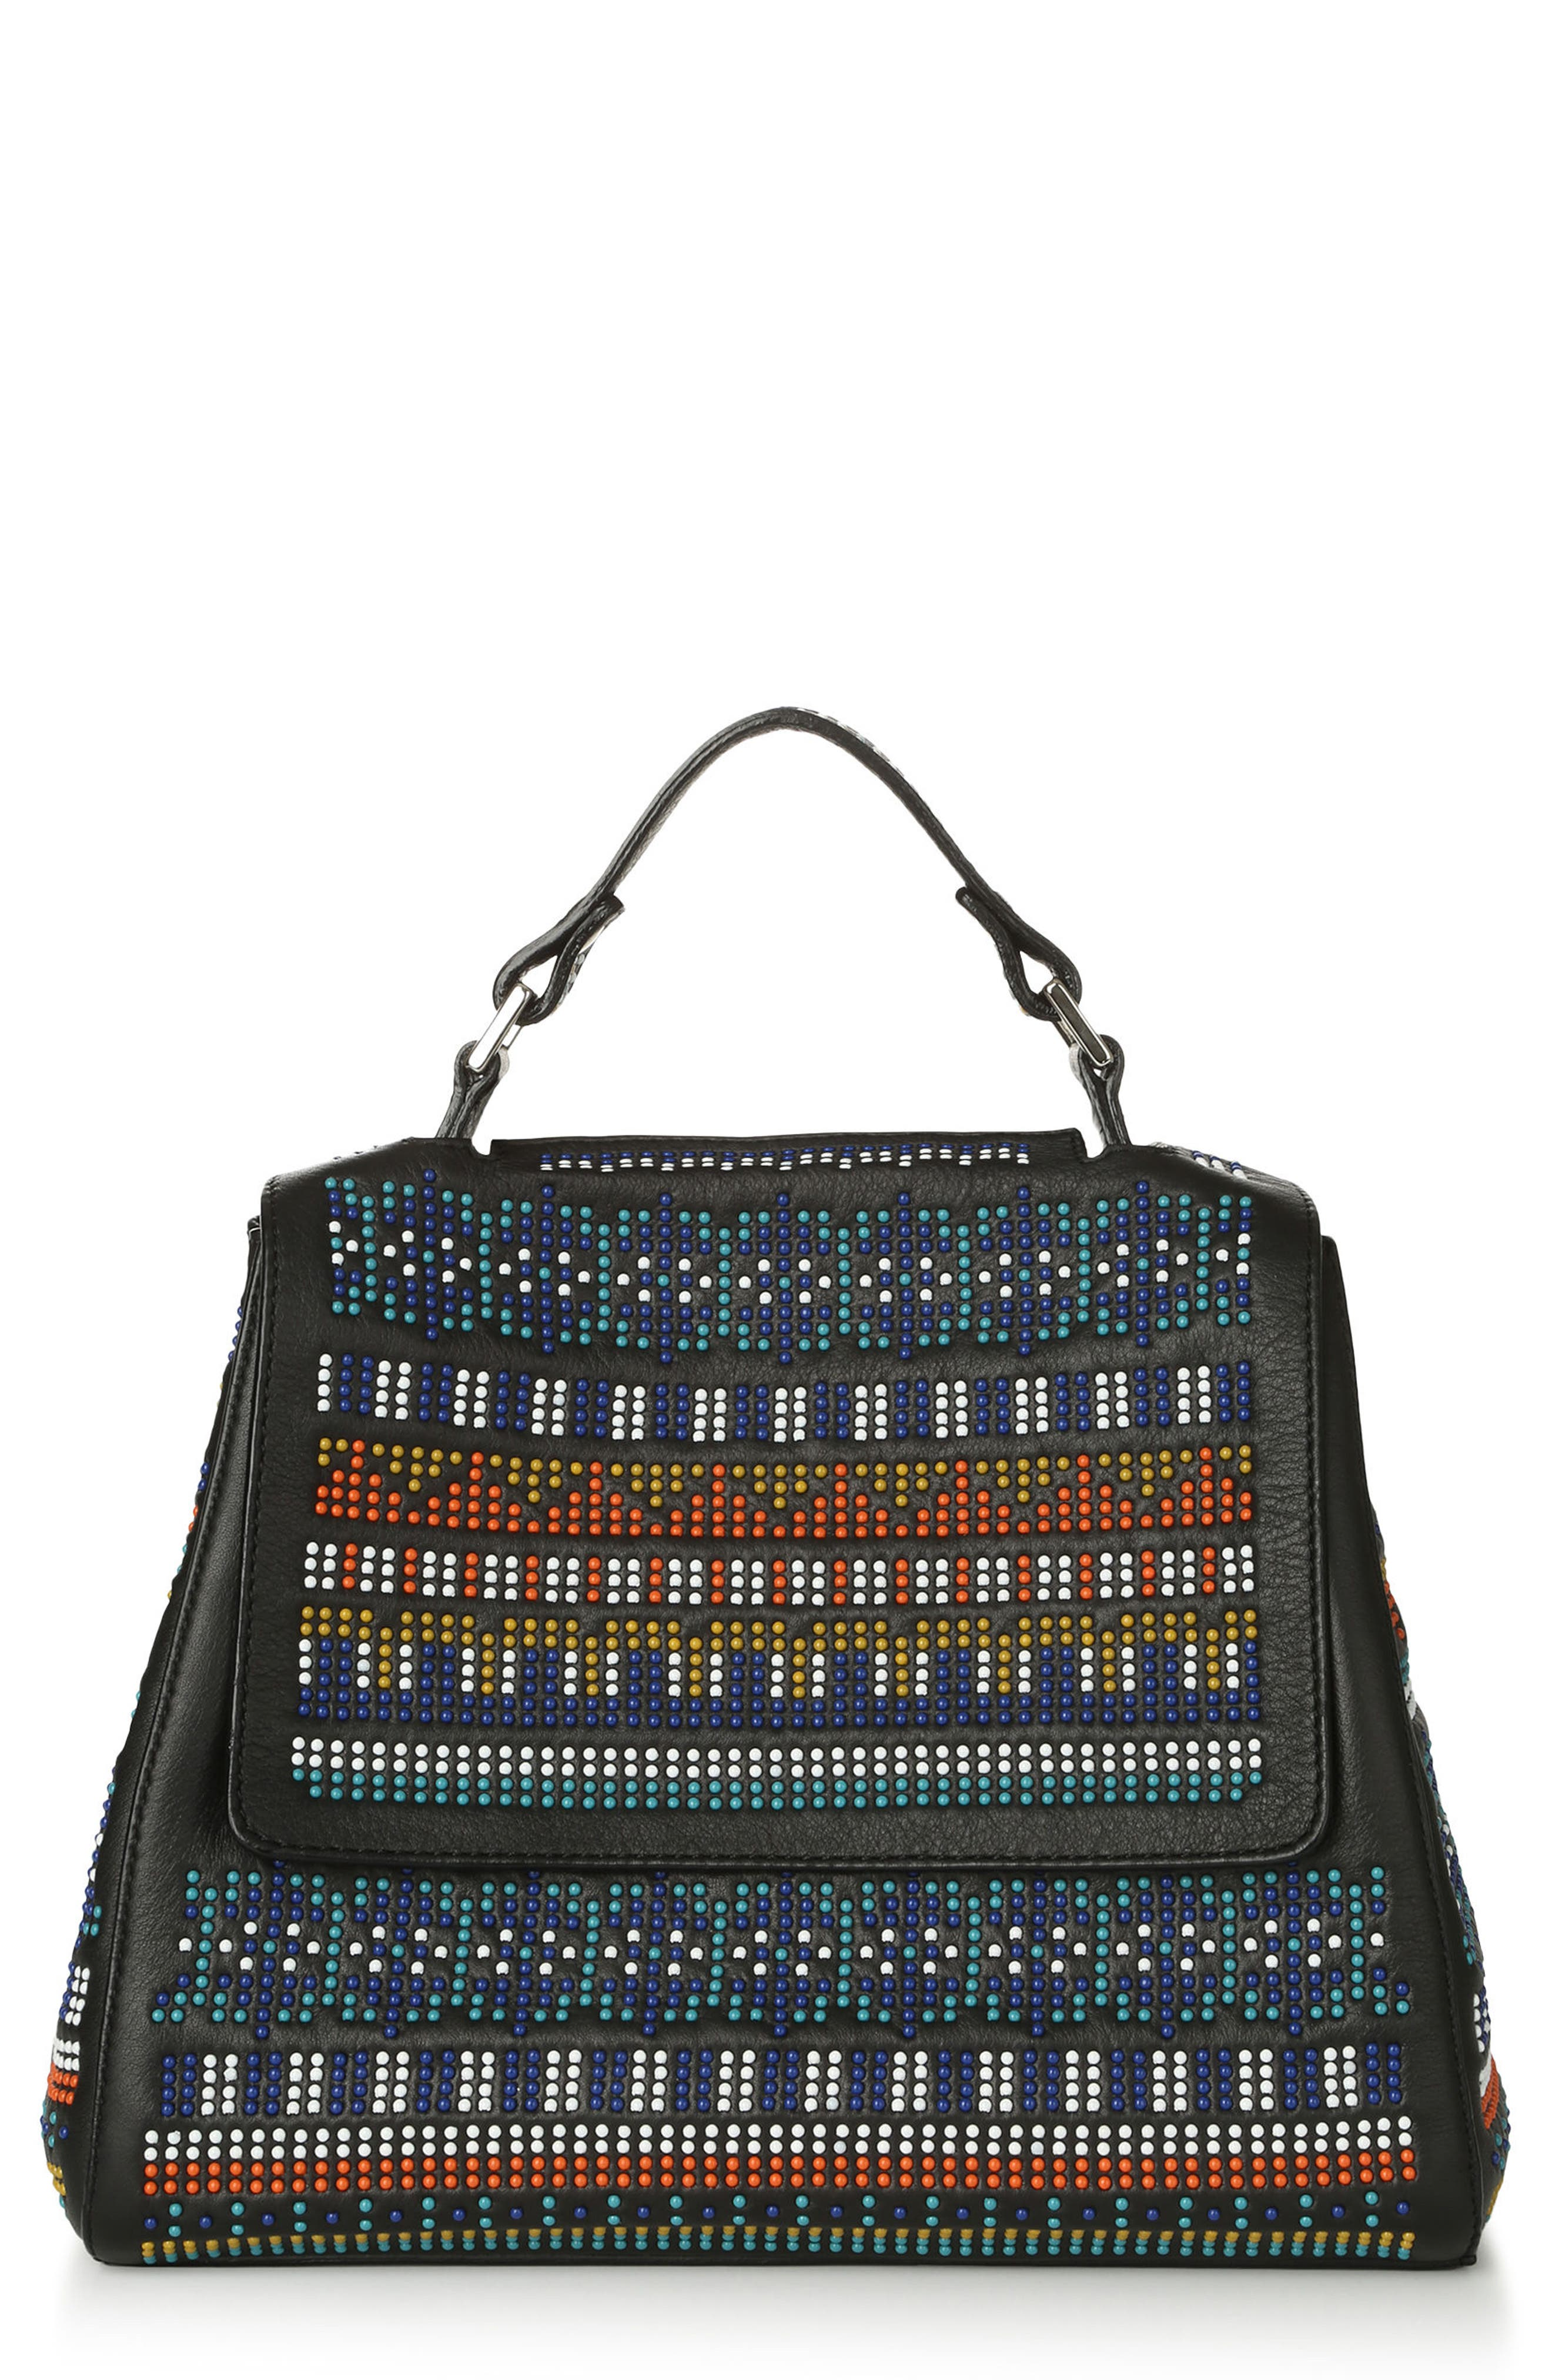 Alternate Image 1 Selected - Orciani Studded Leather Convertible Crossbody Satchel